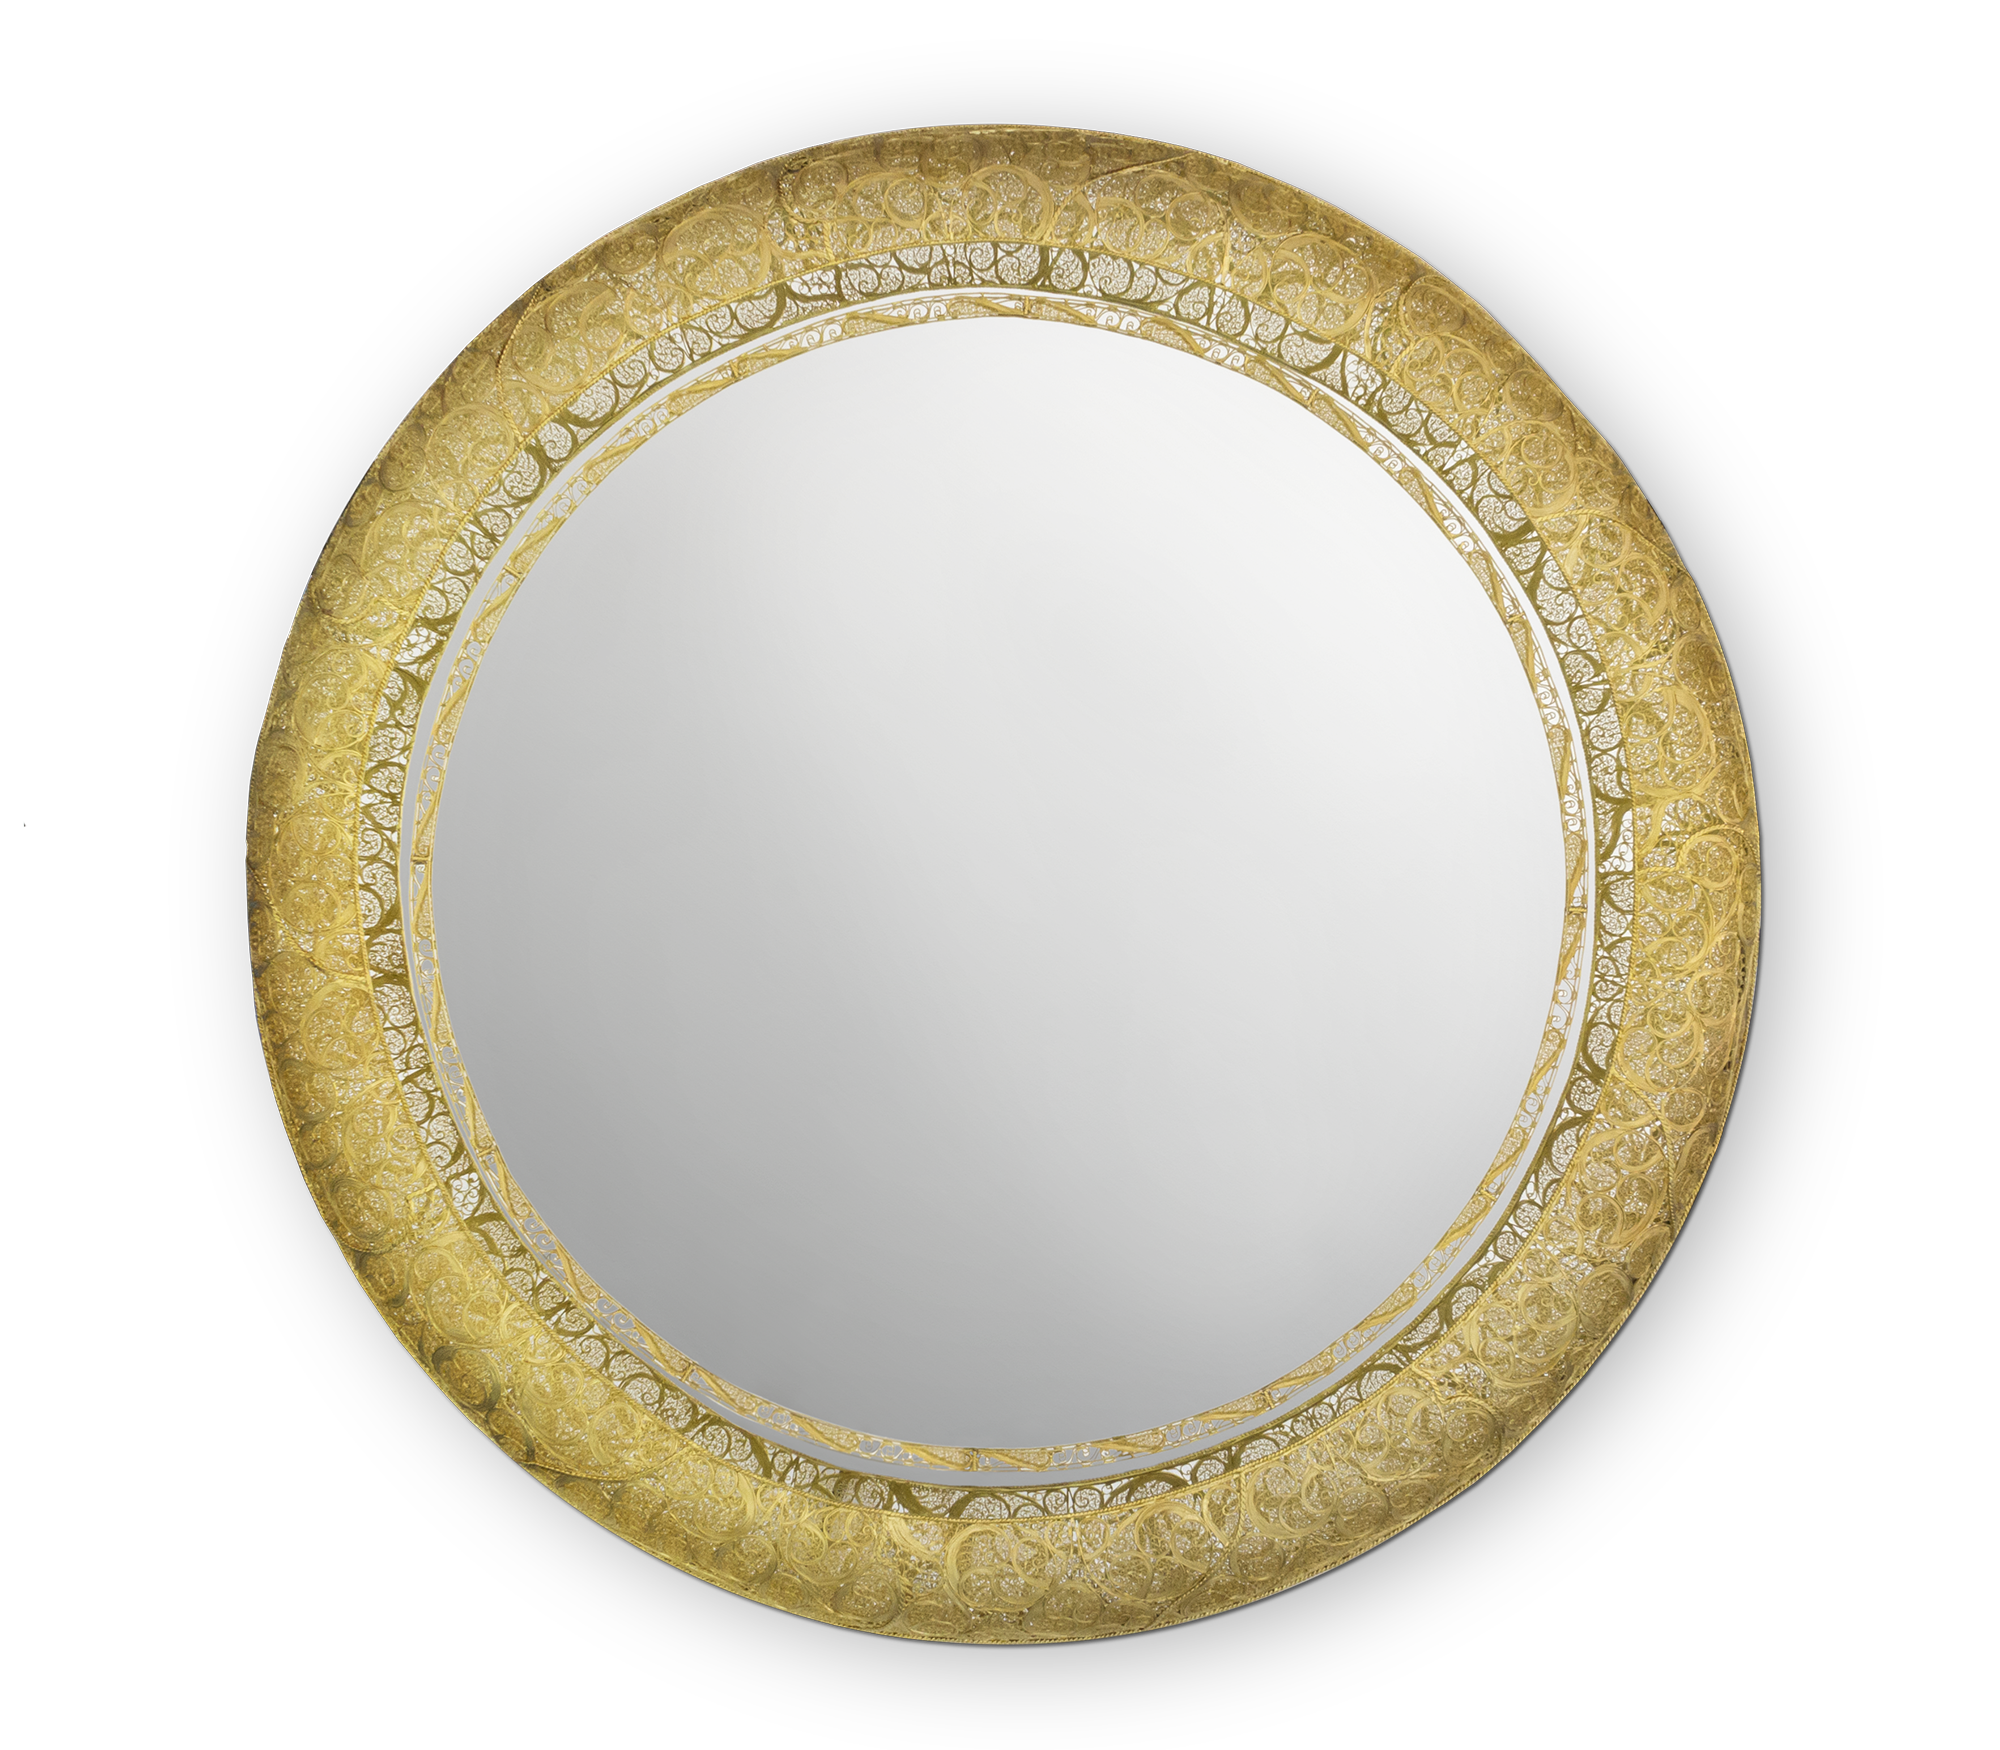 Ring Filigree Mirror by Boca do Lobo